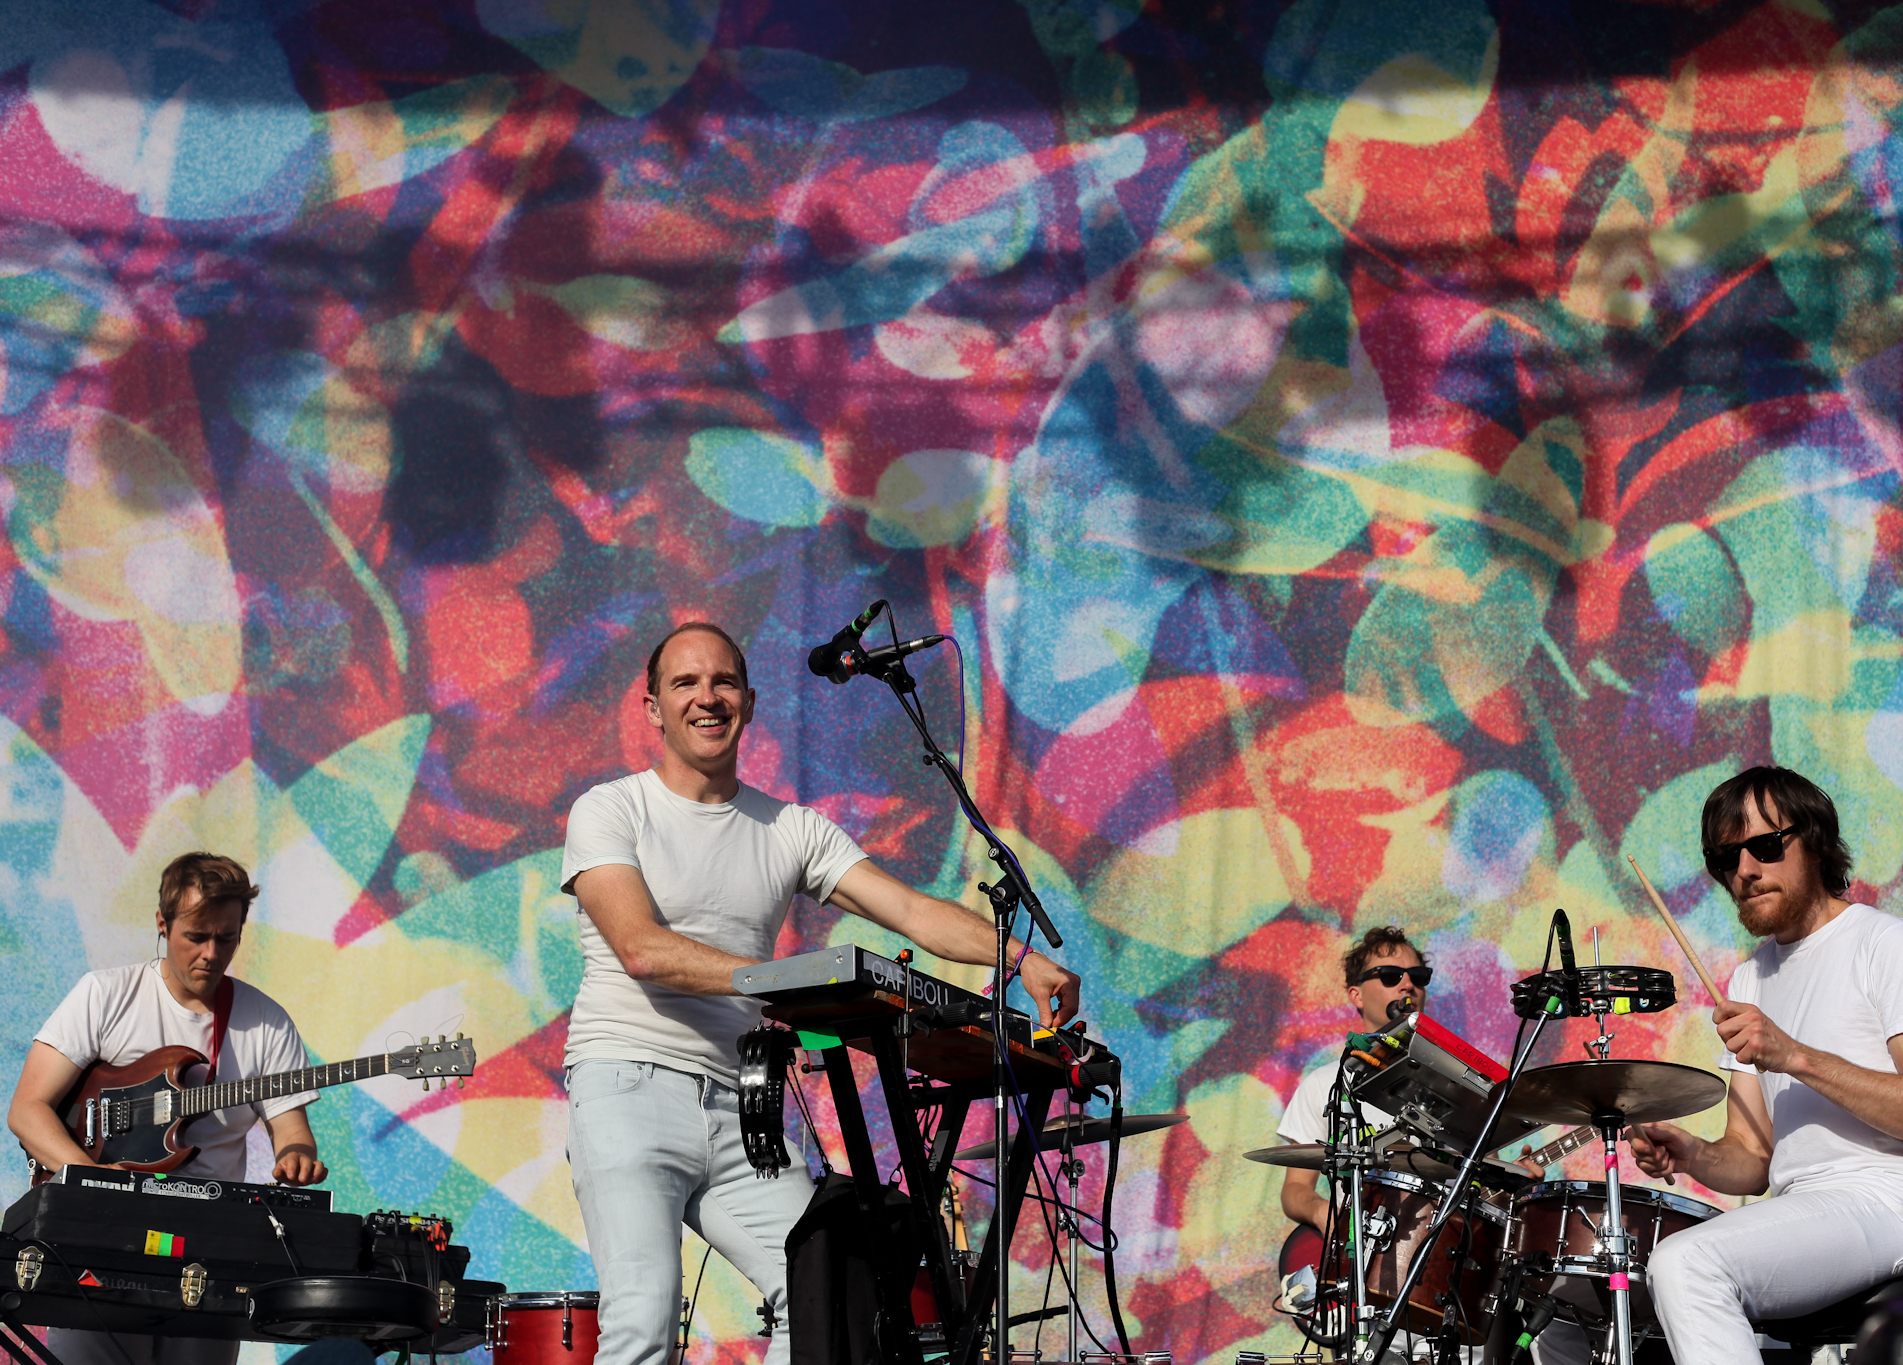 Caribou helped close out the weekend, playing to a sold out crowd on Sunday at Pitchfork Music Festival, July 19, 2015.